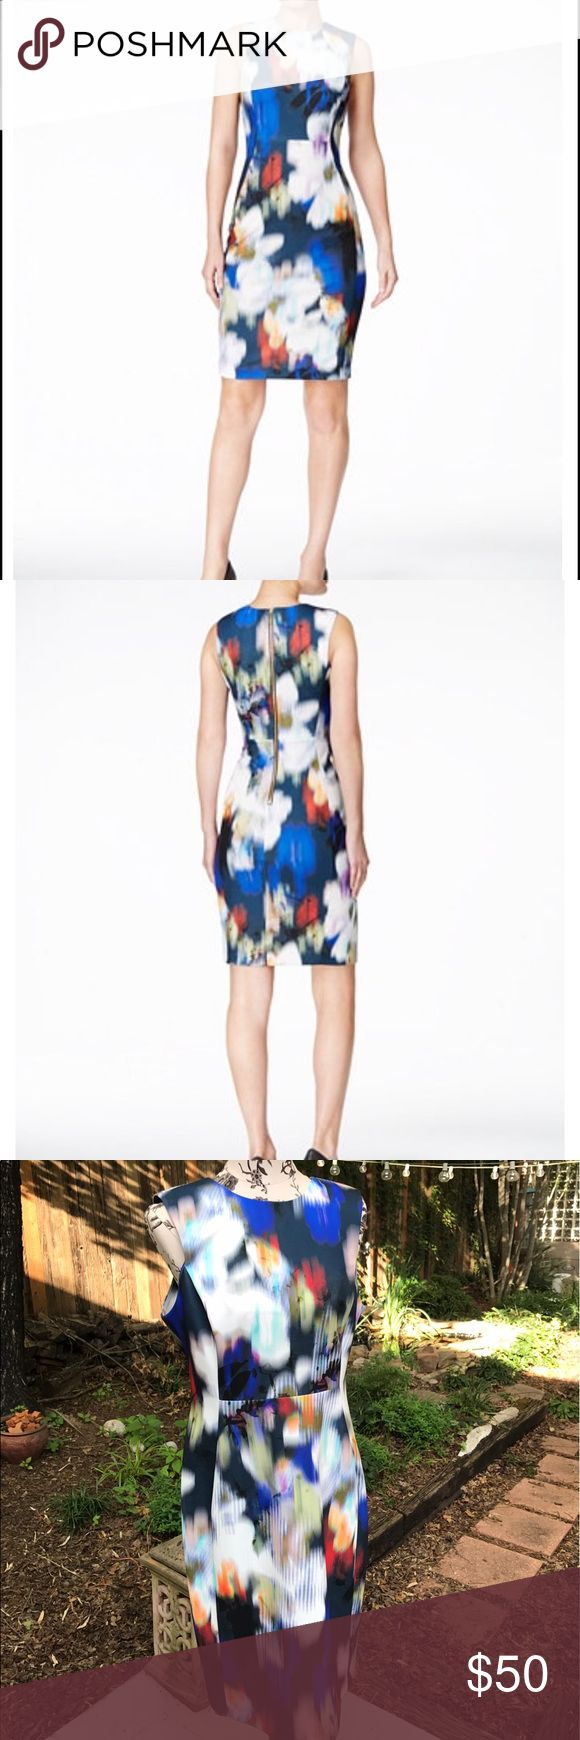 NWT Calvin Klein Dress NWT Calvin Klein Sheath Dress. Body smoothing scuba material. Ultramarine Multi coloured.  Calvin Klein Blurred floral print sleeveless sheath dress features a round neck and zipper closure. Measures 38 inches shoulder to hem. 95% Polyester, 5% Spandex. Dry clean. Size 12 Calvin Klein Dresses